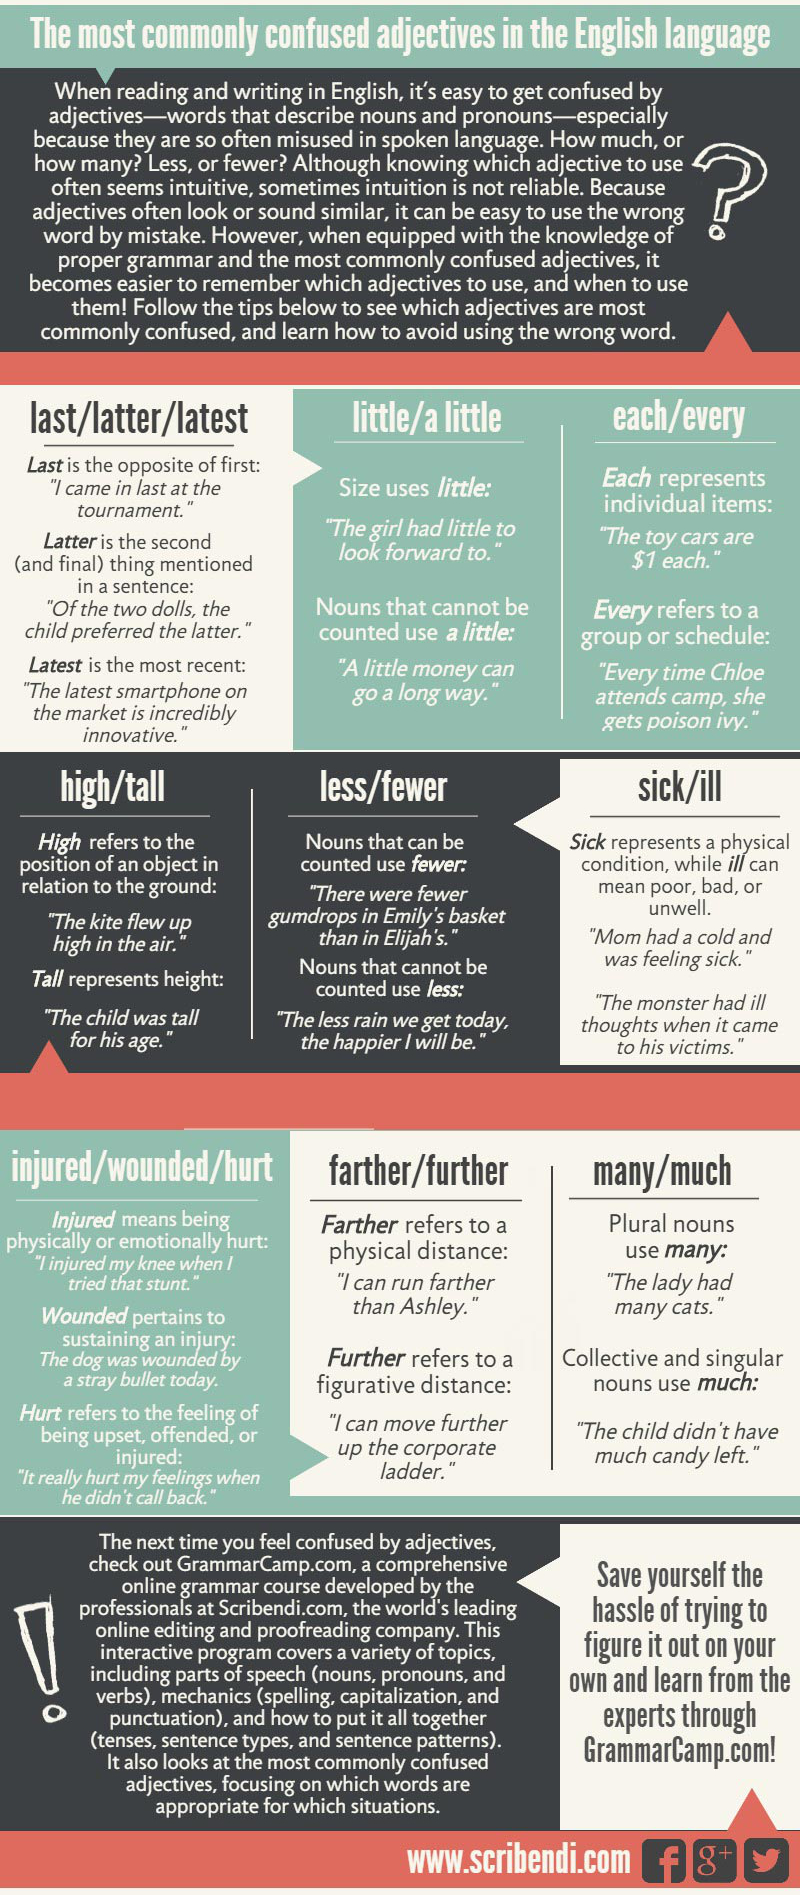 Commonly confused adjectives.